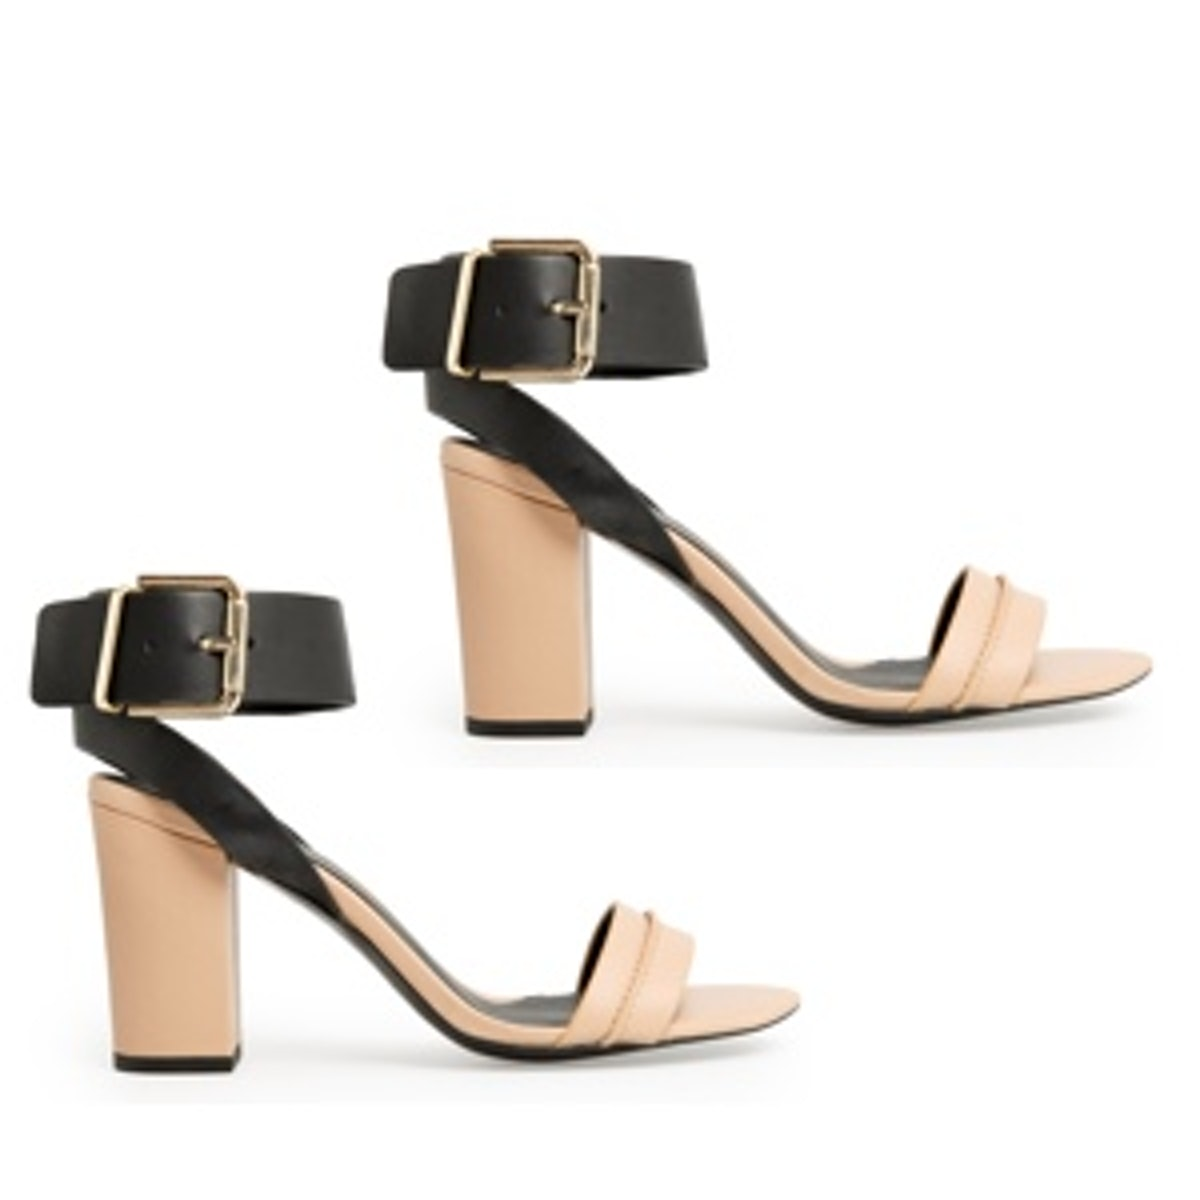 Ankle Cuff Leather Sandals